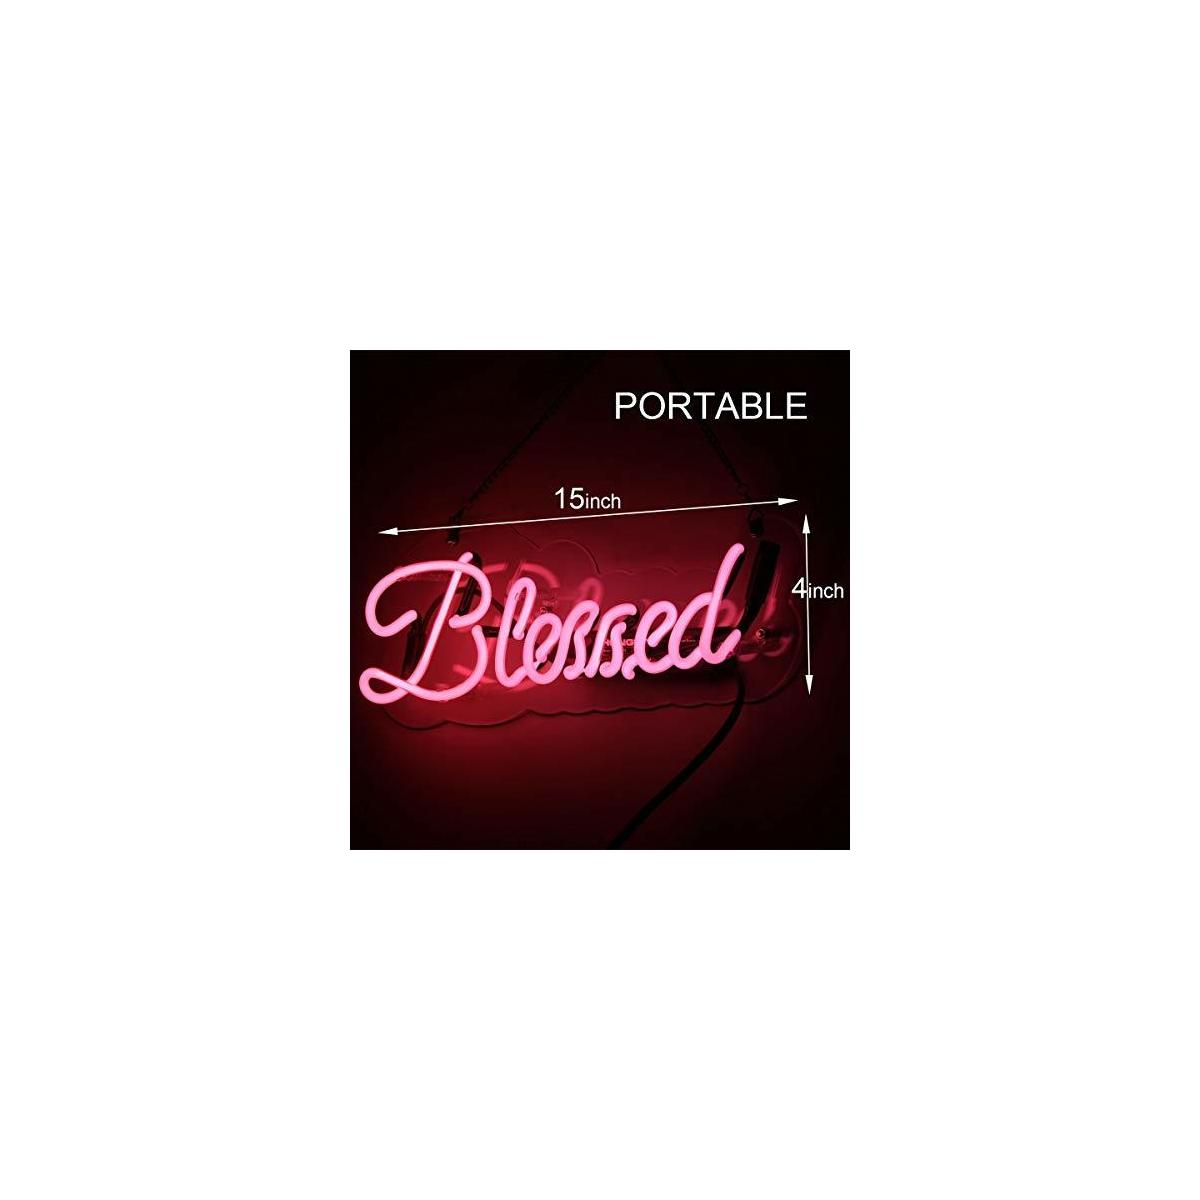 Neon Sign Blessed Shaped Handmade Glass Neon Light Sign 15 x 4 Inch Pink Novelty Night Light Decorative Beer Bar Sign for Bedroom Wall Office Party Decor